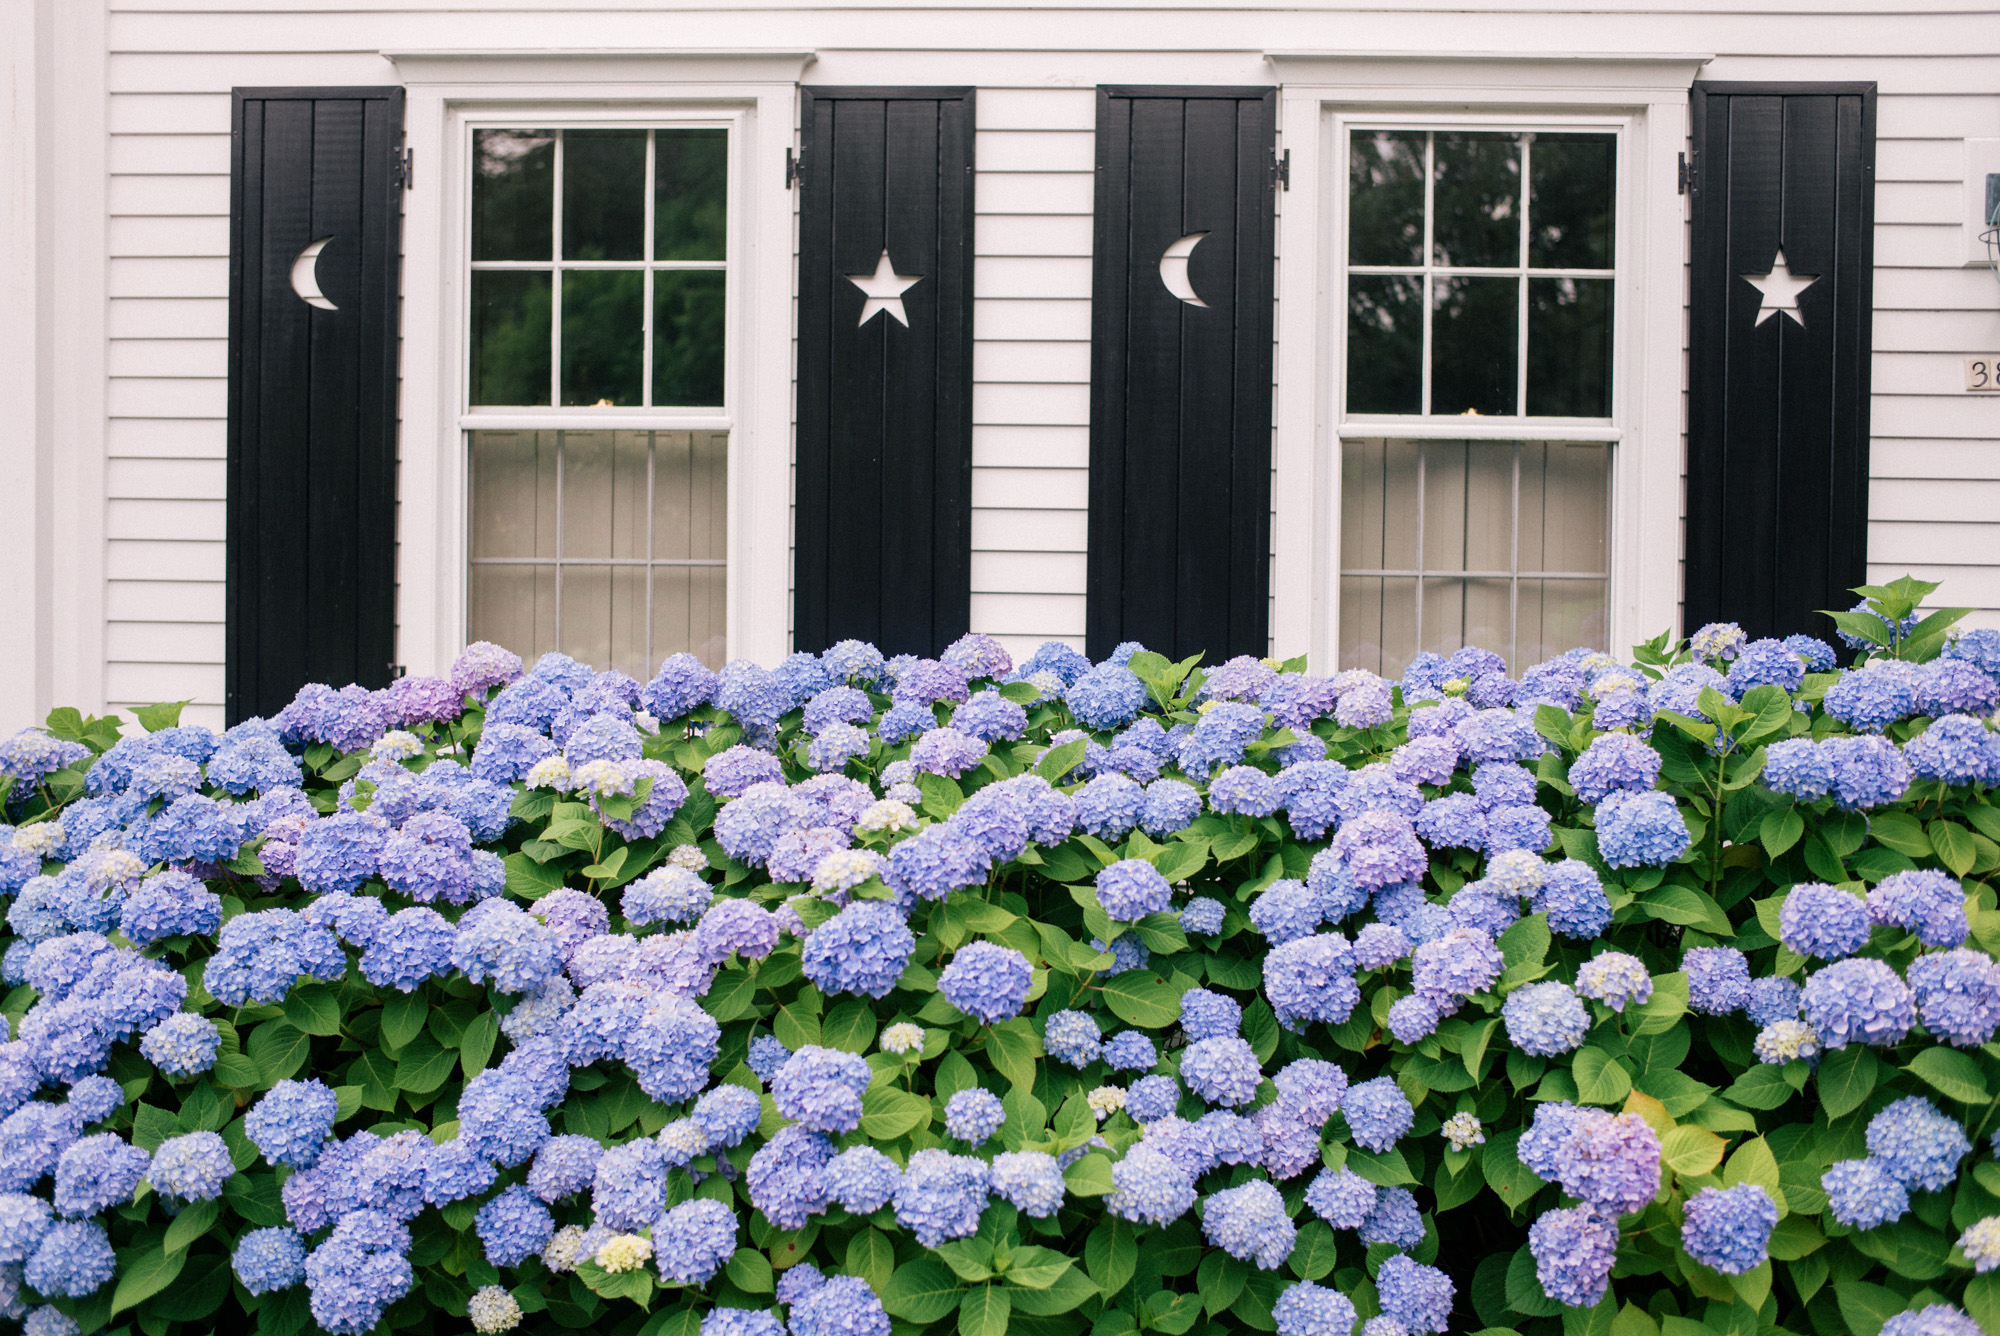 gmg-a-week-on-nantucket-part-two-1009507